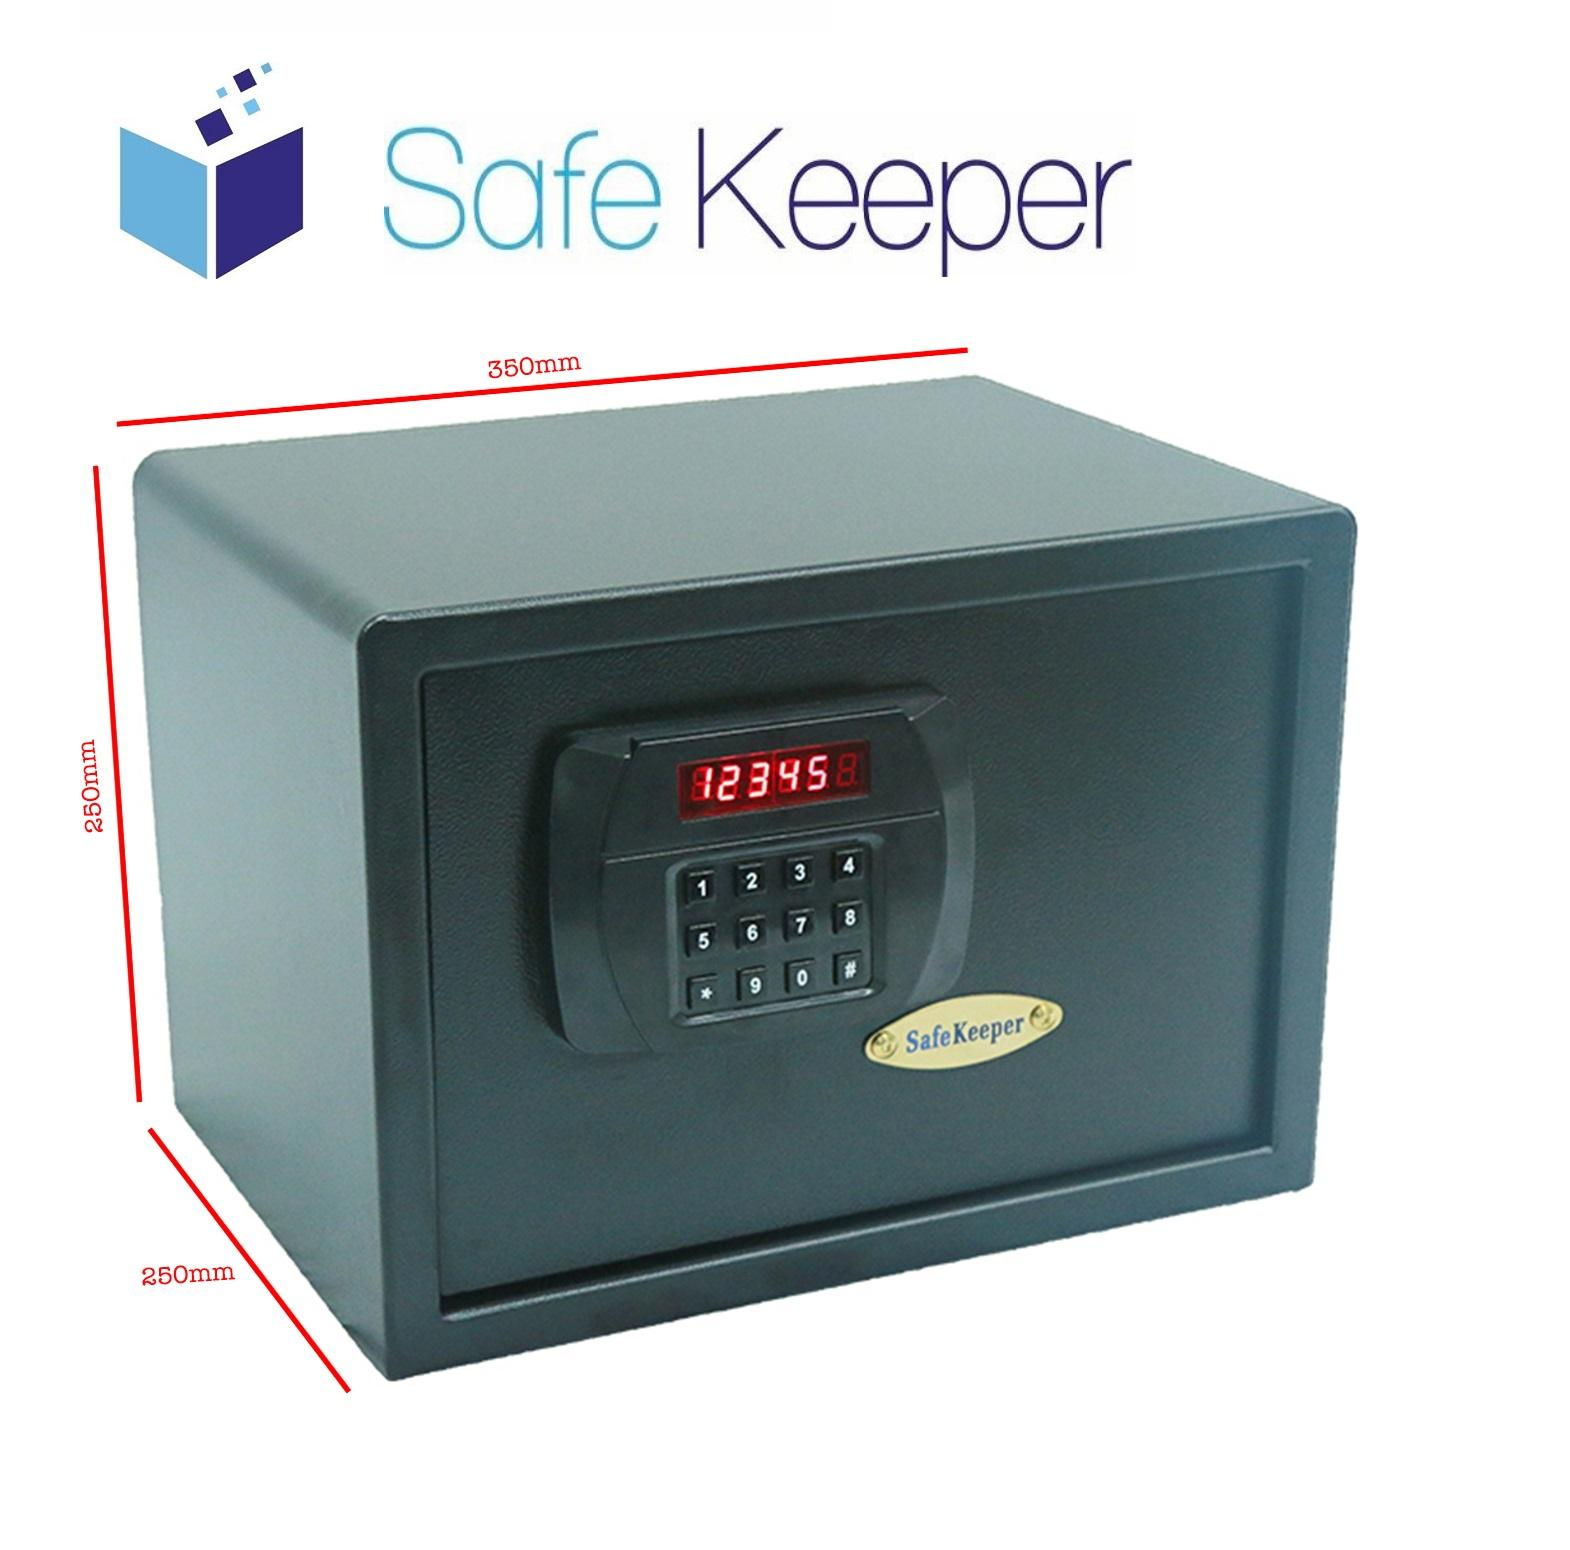 SafeKeeper SK2535 Medium Safe ( 100% New Product! Color: Black ) (3 Working Days) (100% Brand New Product)